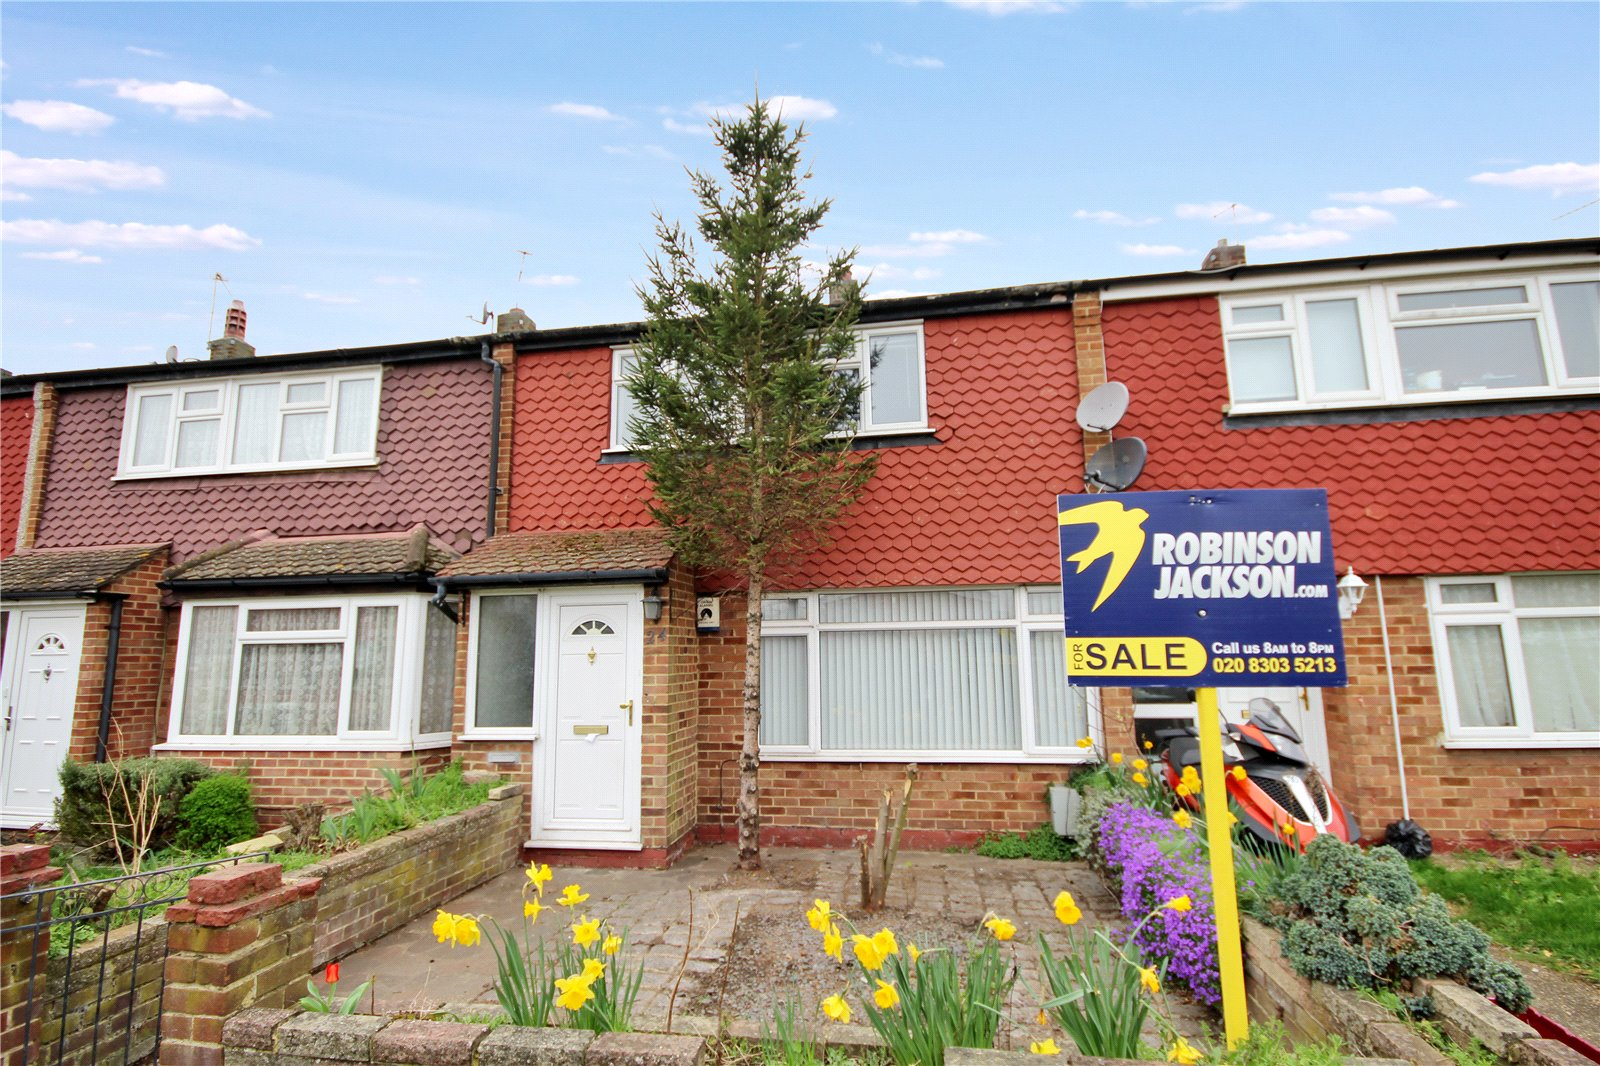 Linton Close, Welling, Kent, DA16